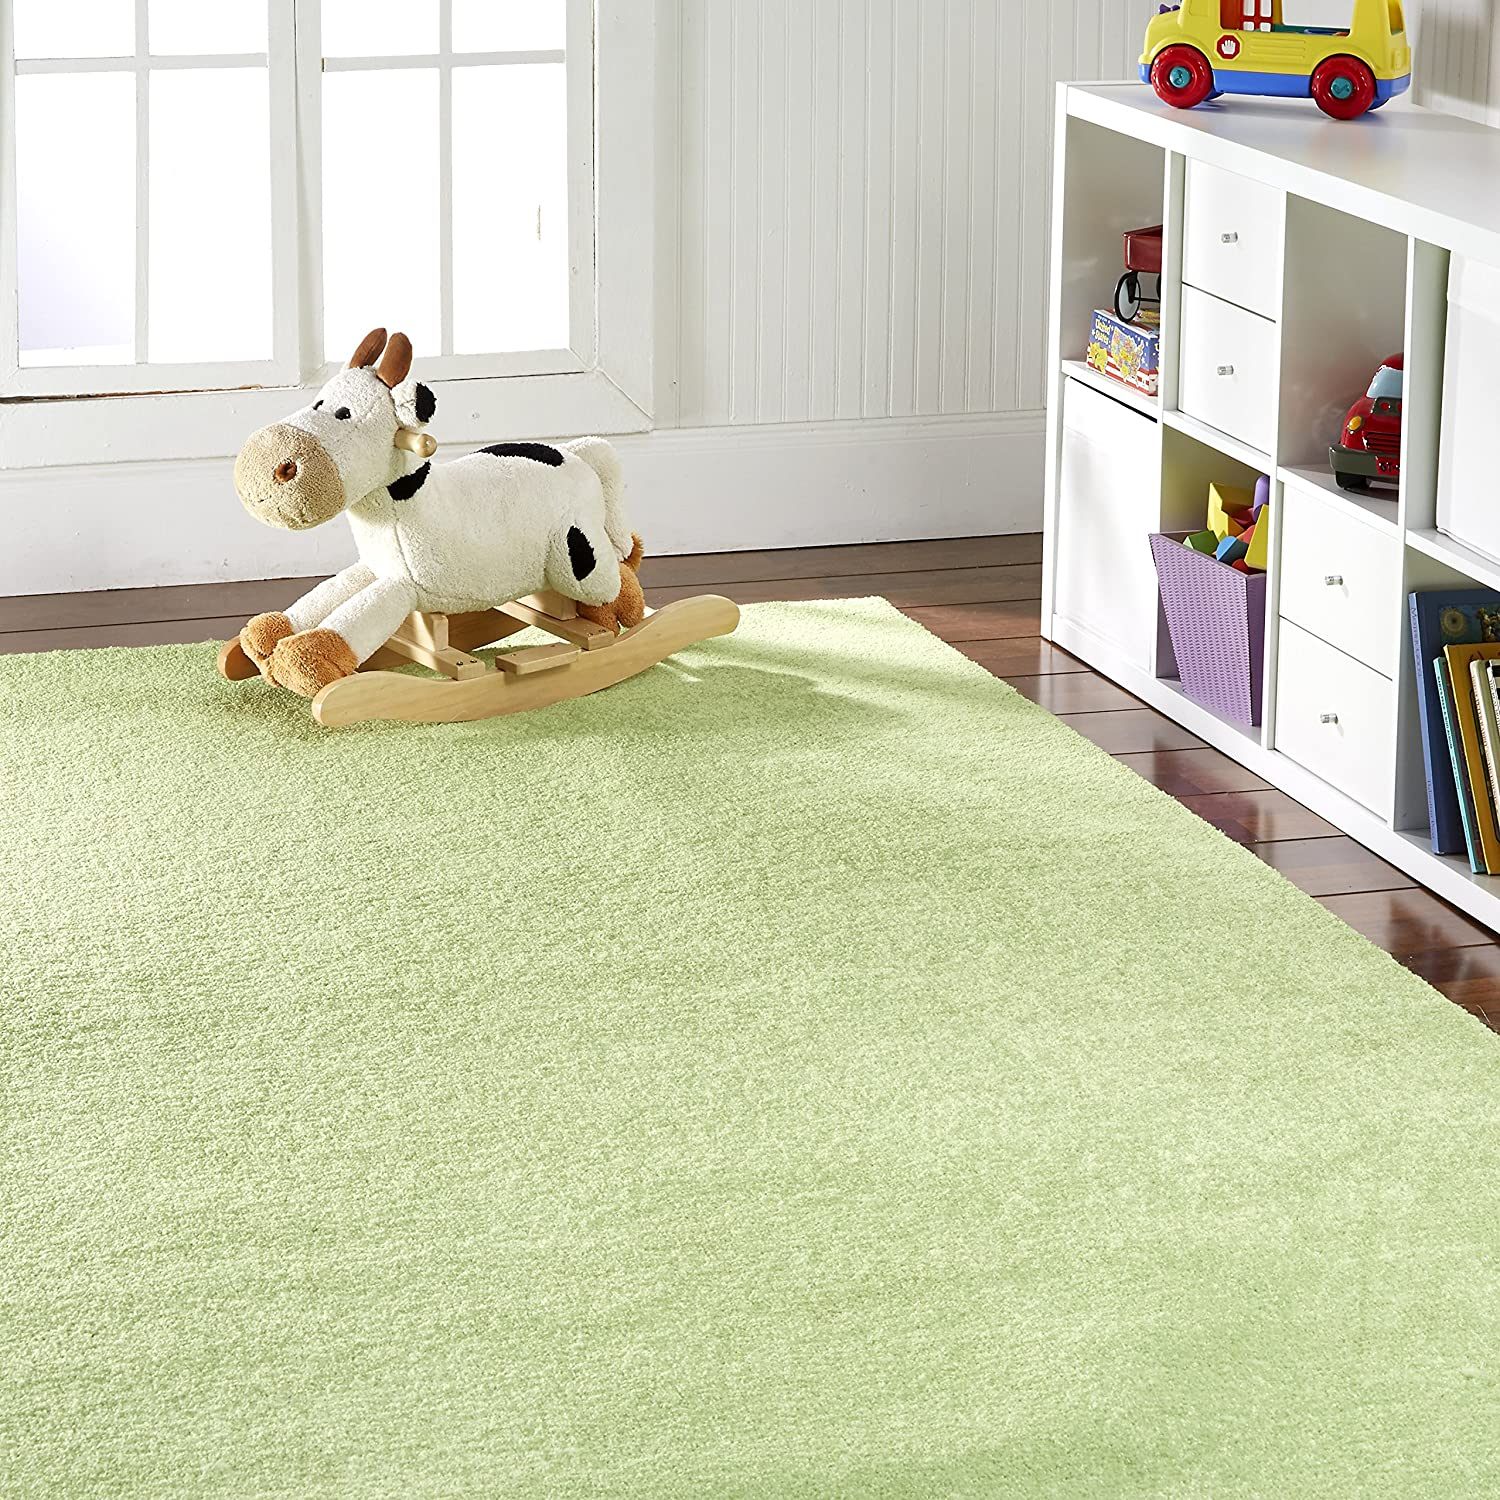 OurSpace Bright Area Rug, 8-Feet by 10-Feet, Lemon Lime